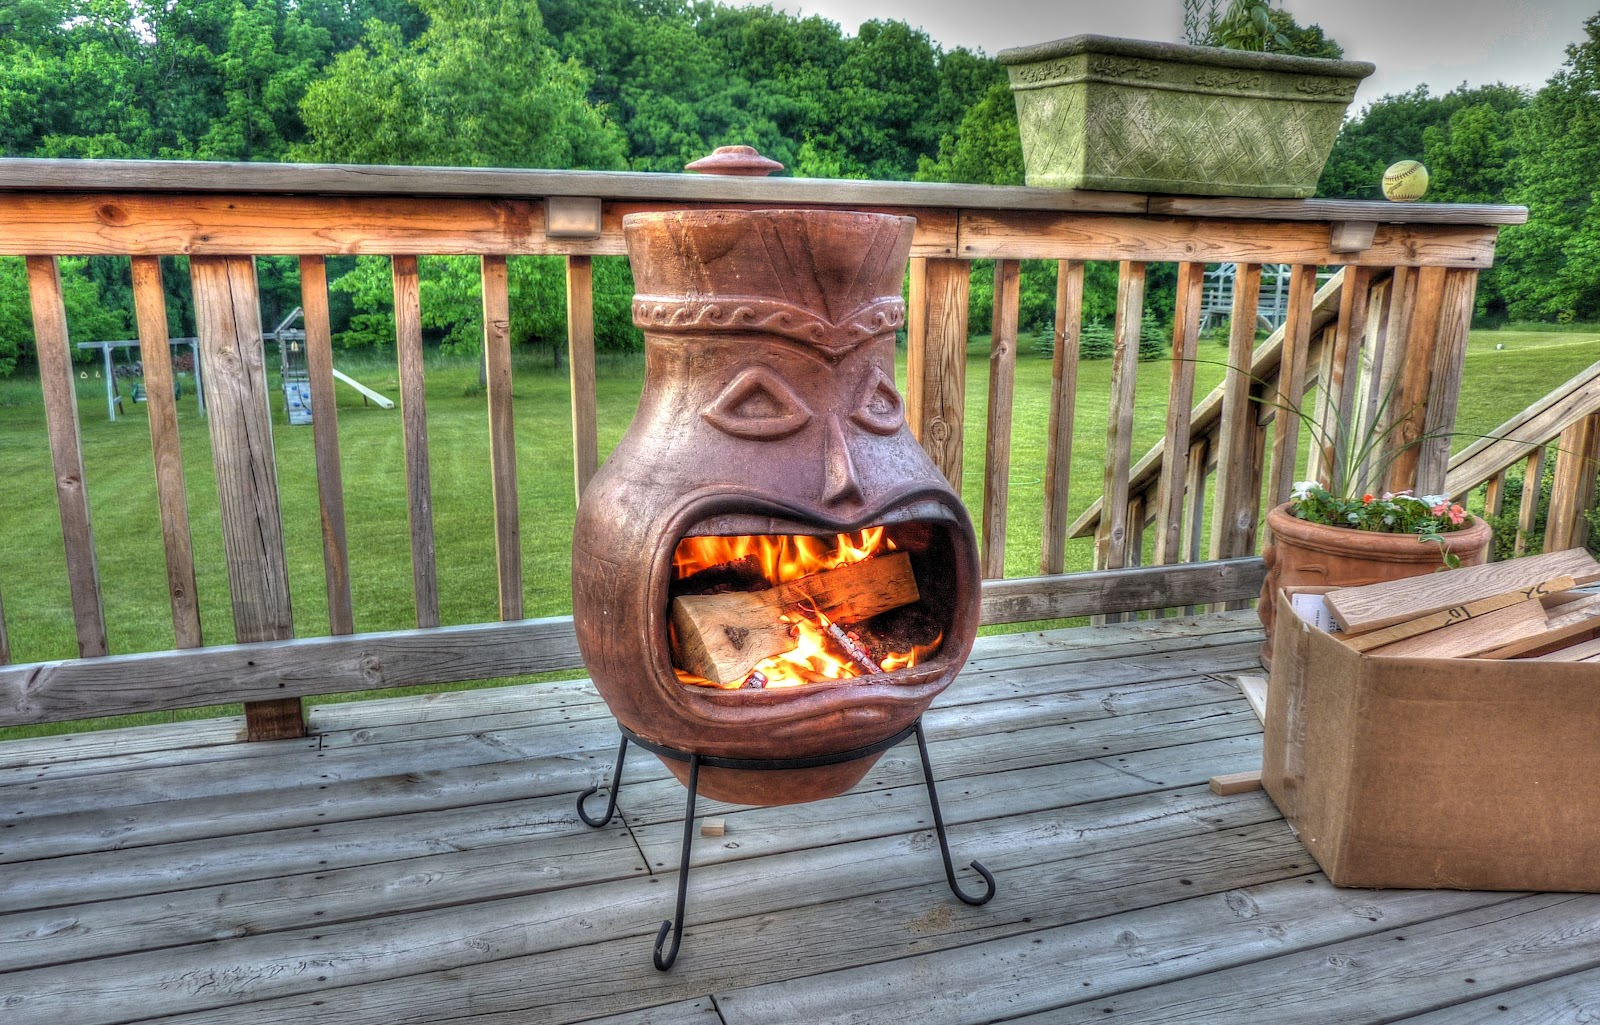 Baking in a Chiminea